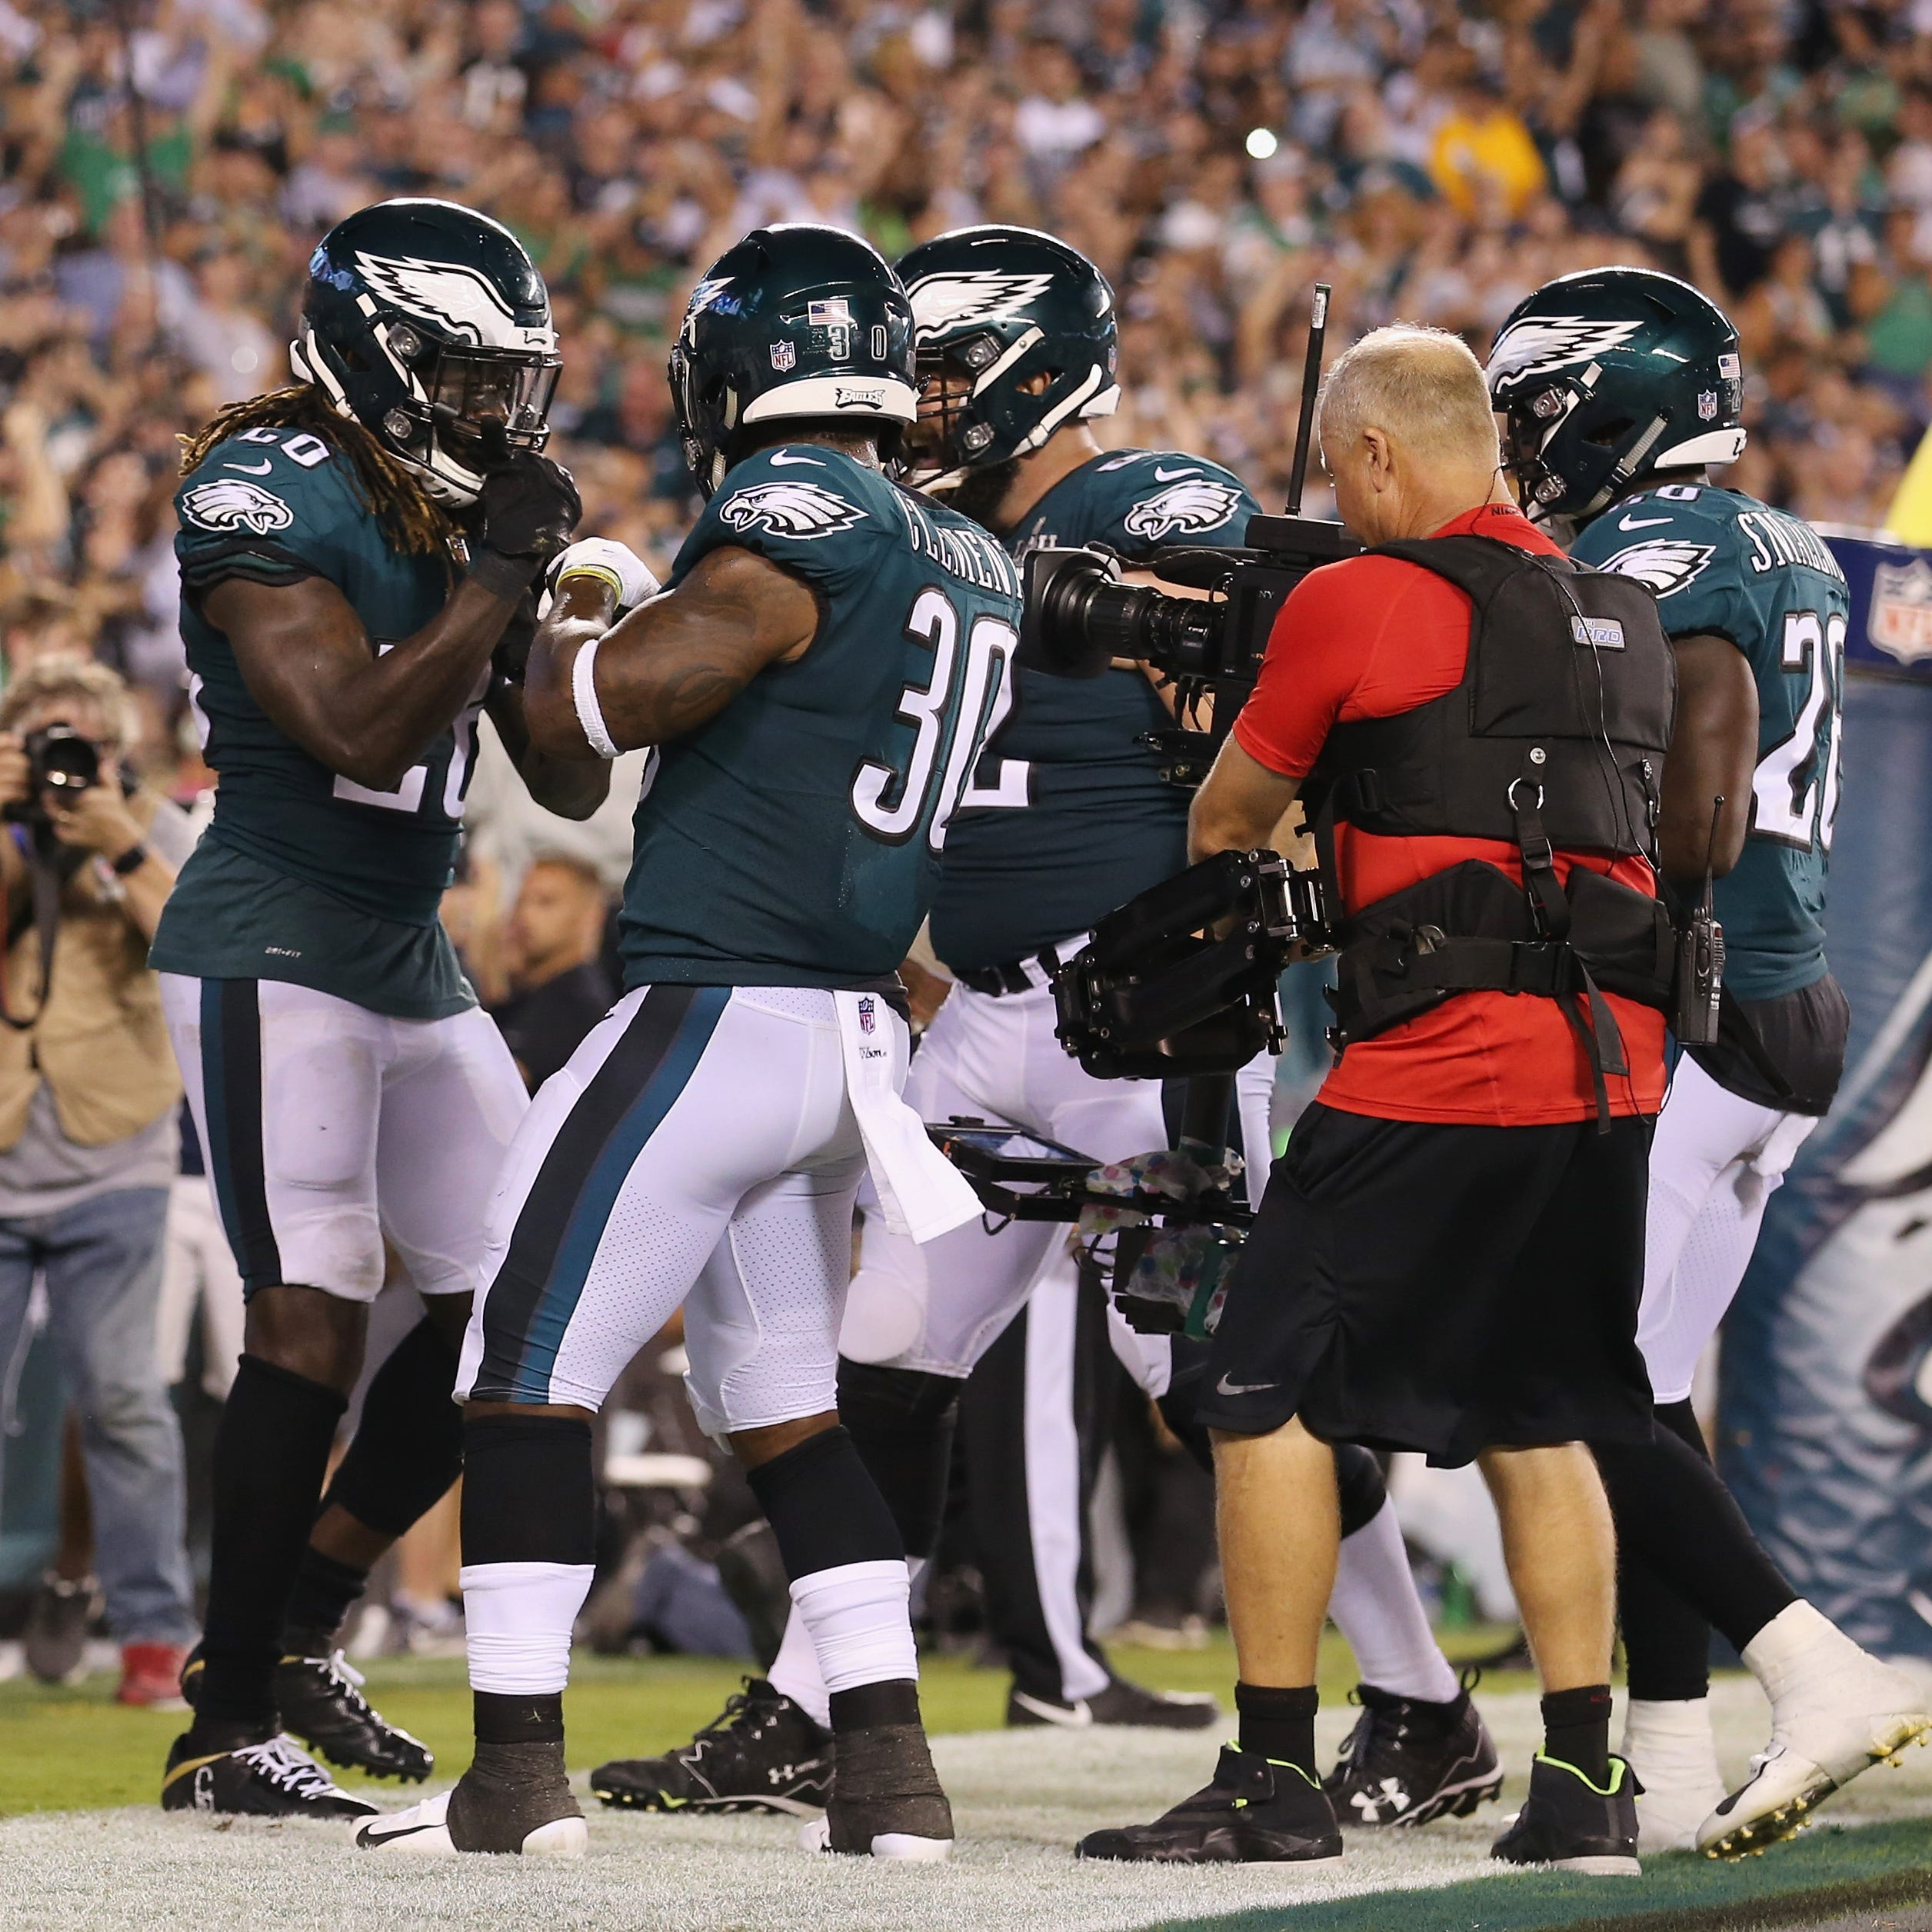 In NFL season opener, Eagles stop Falcons, Matt Ryan, 18-12